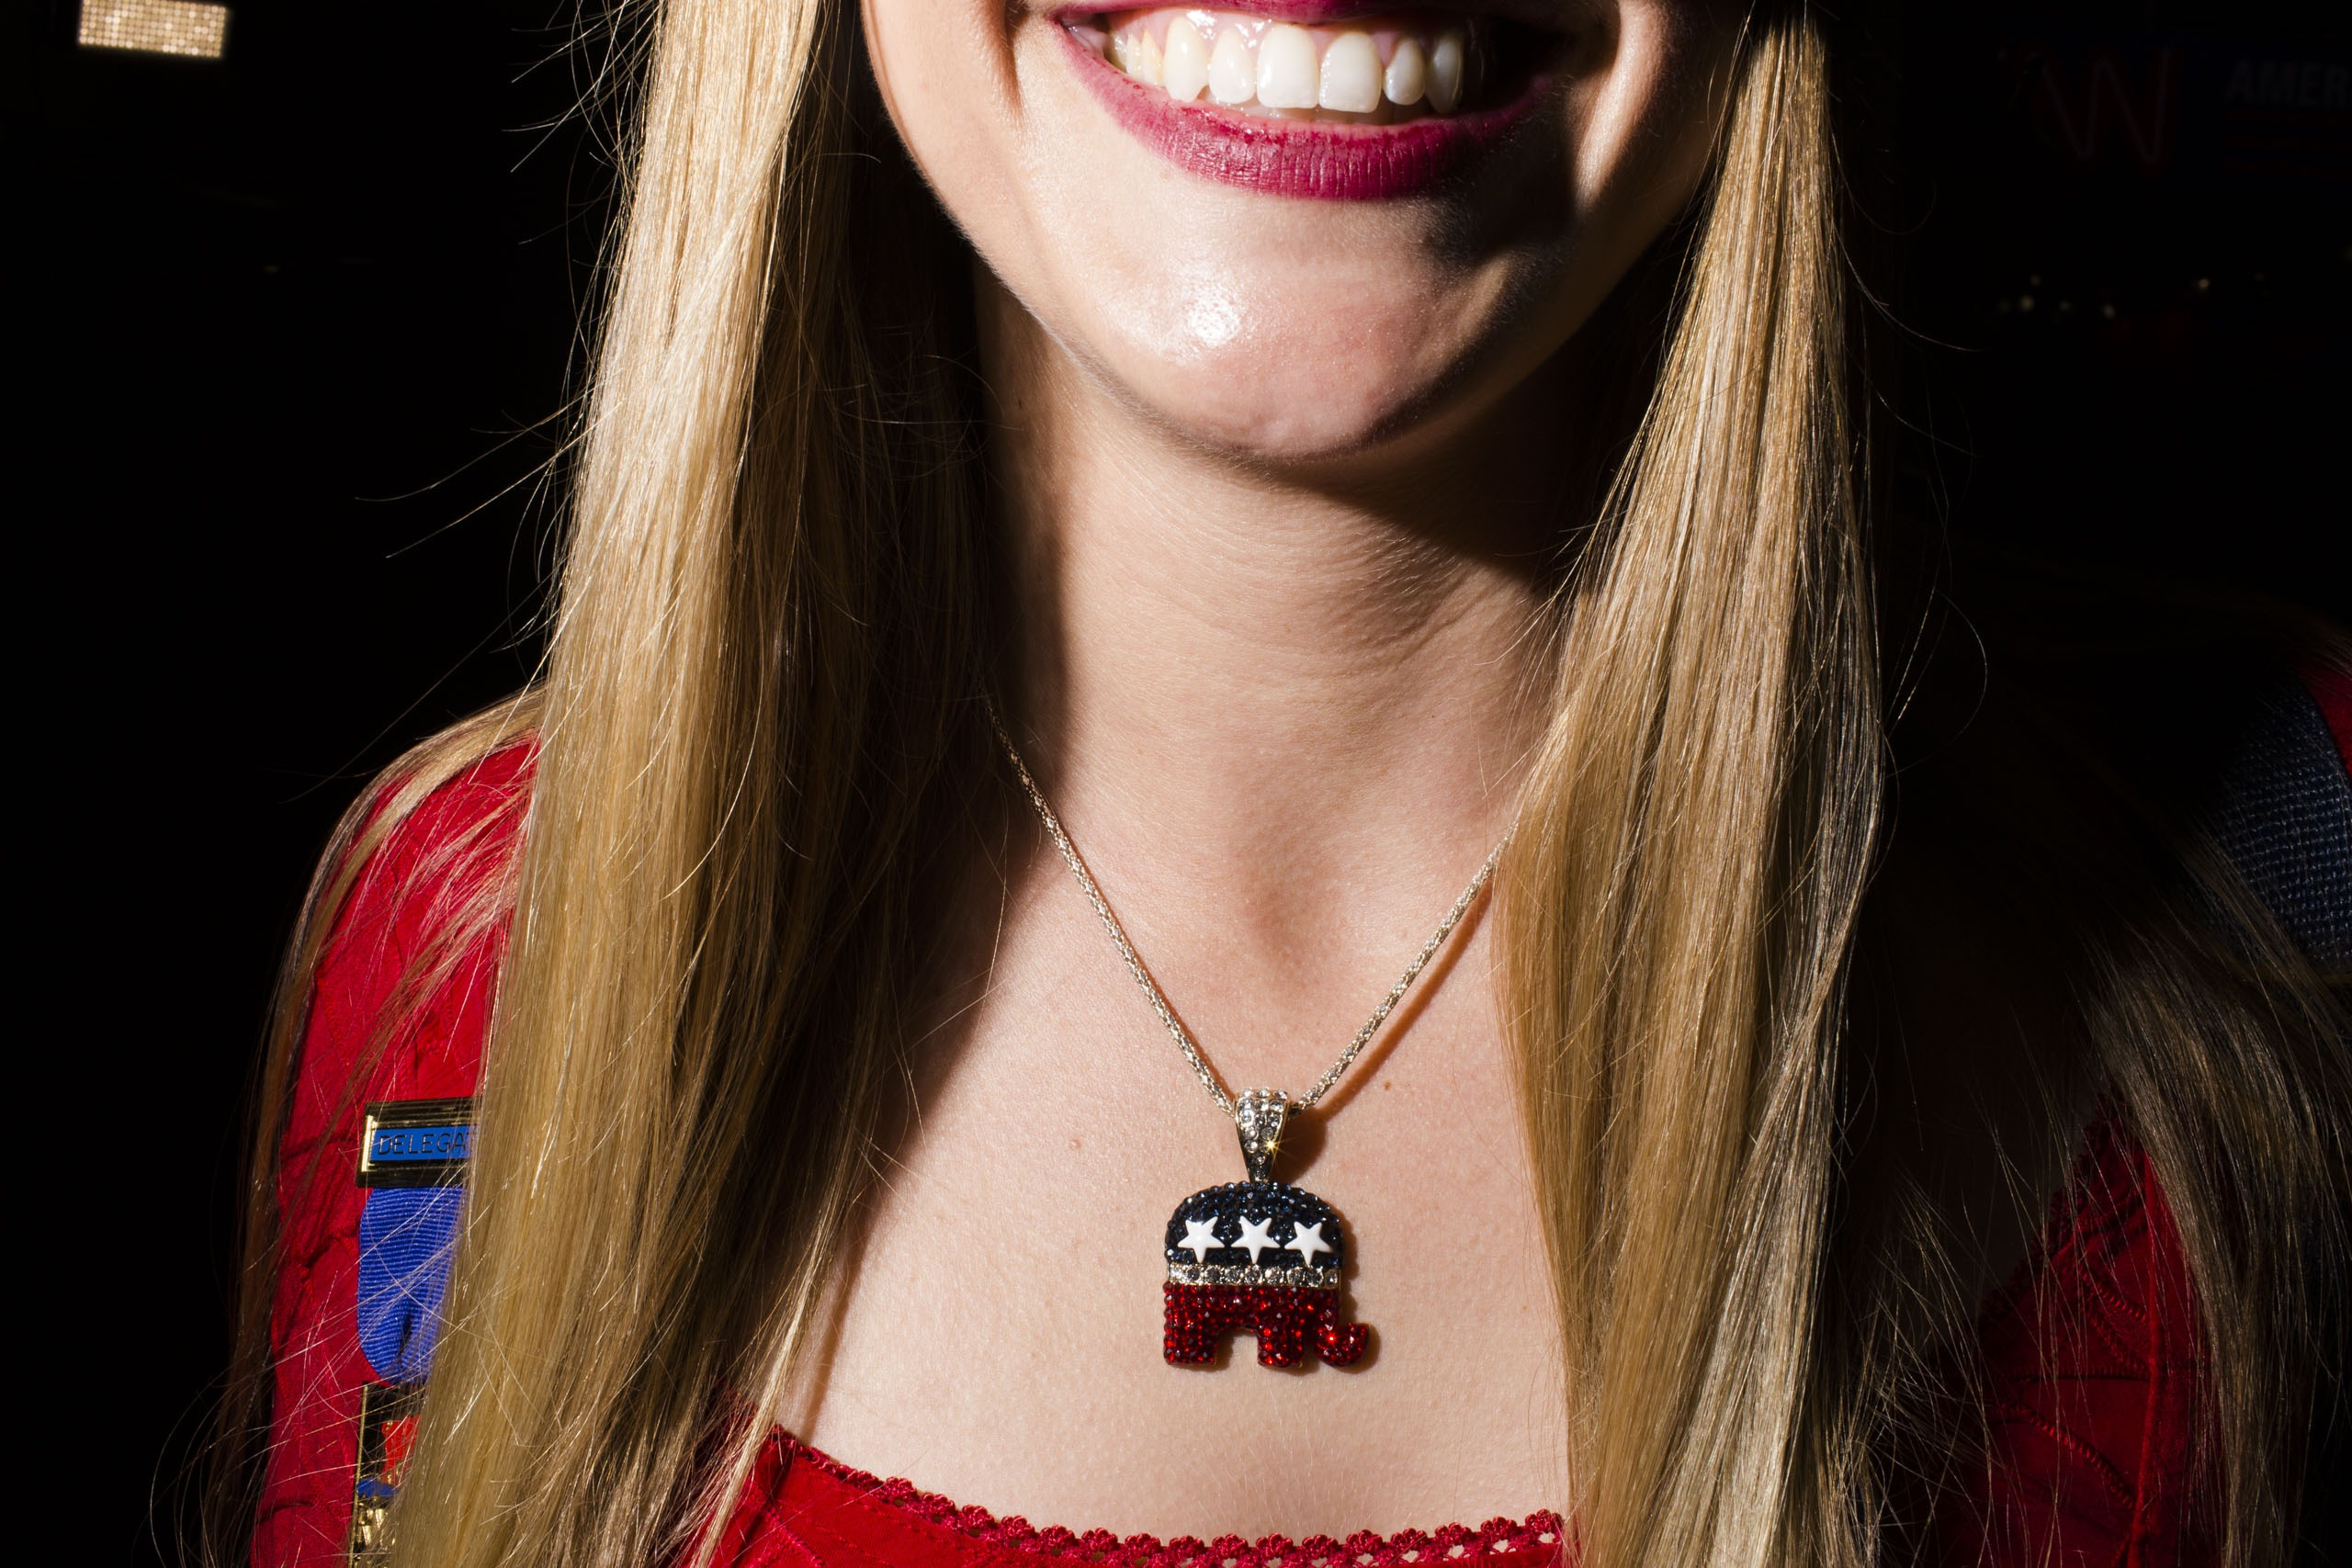 An elephant pendant is worn on the floor of the Republican National Convention in Cleveland on Tuesday, July 19, 2016.